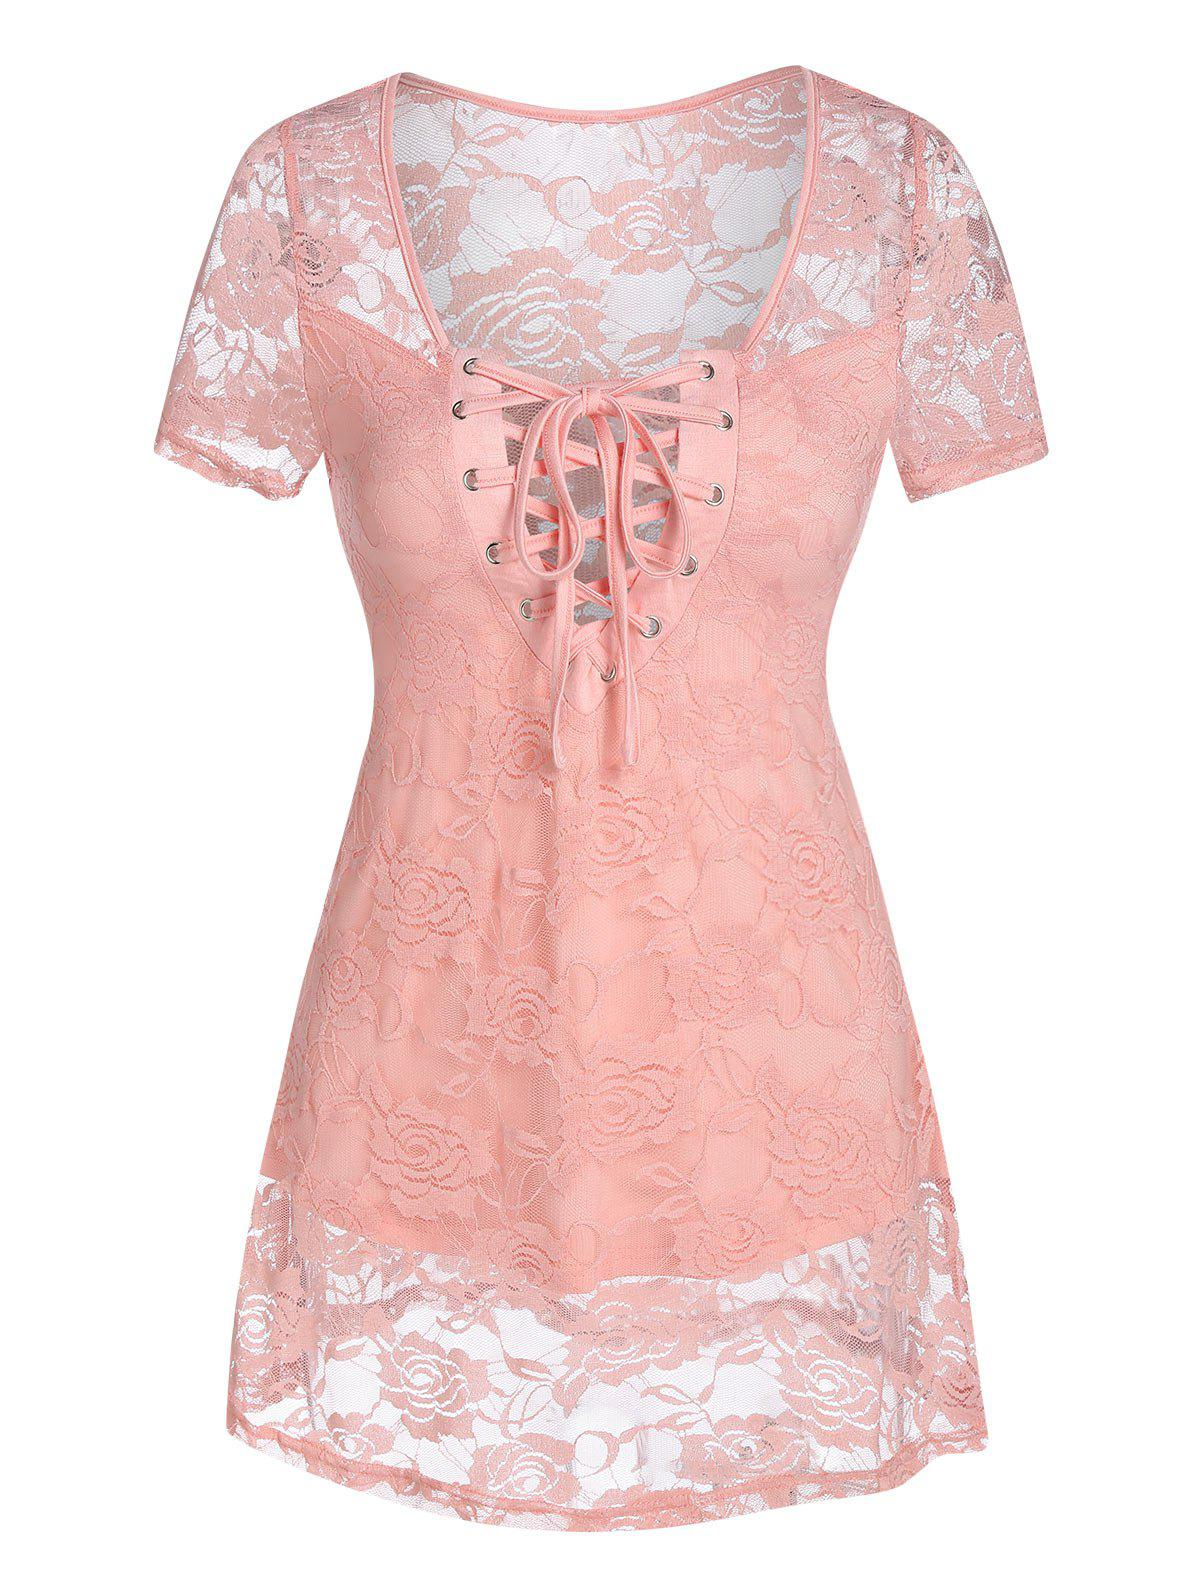 Affordable Lace-up Flower Lace Top